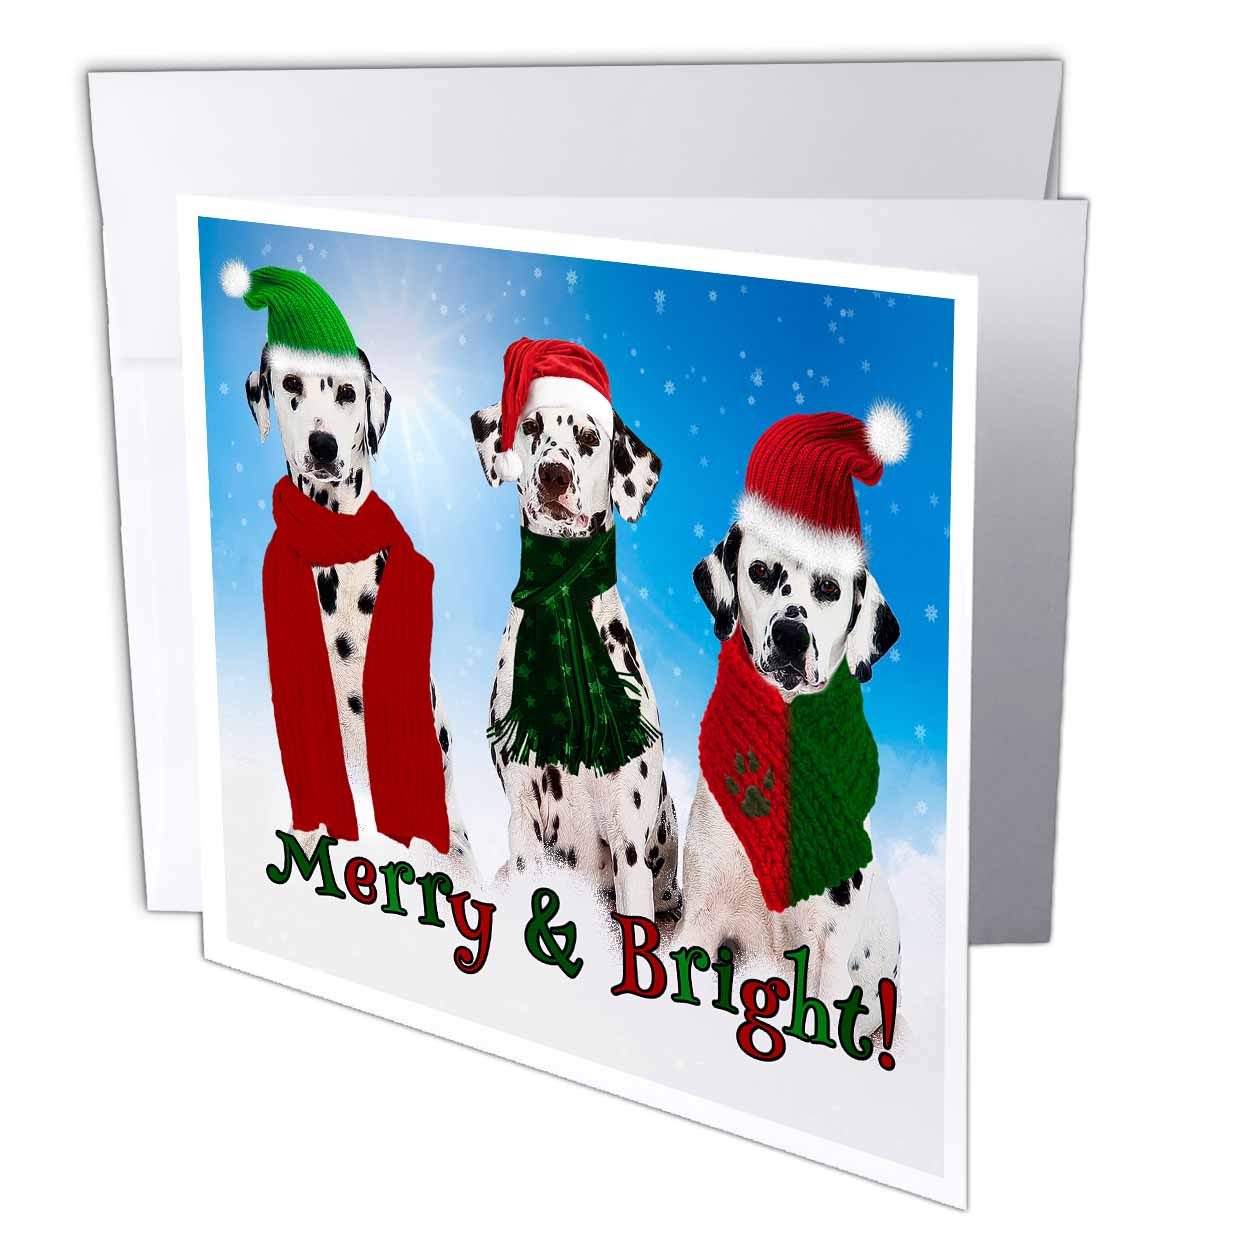 3dRose Three Dalmatian Dogs in the snow for a Merry and Bright Christmas, Greeting Card, 6 x 6 inches, single